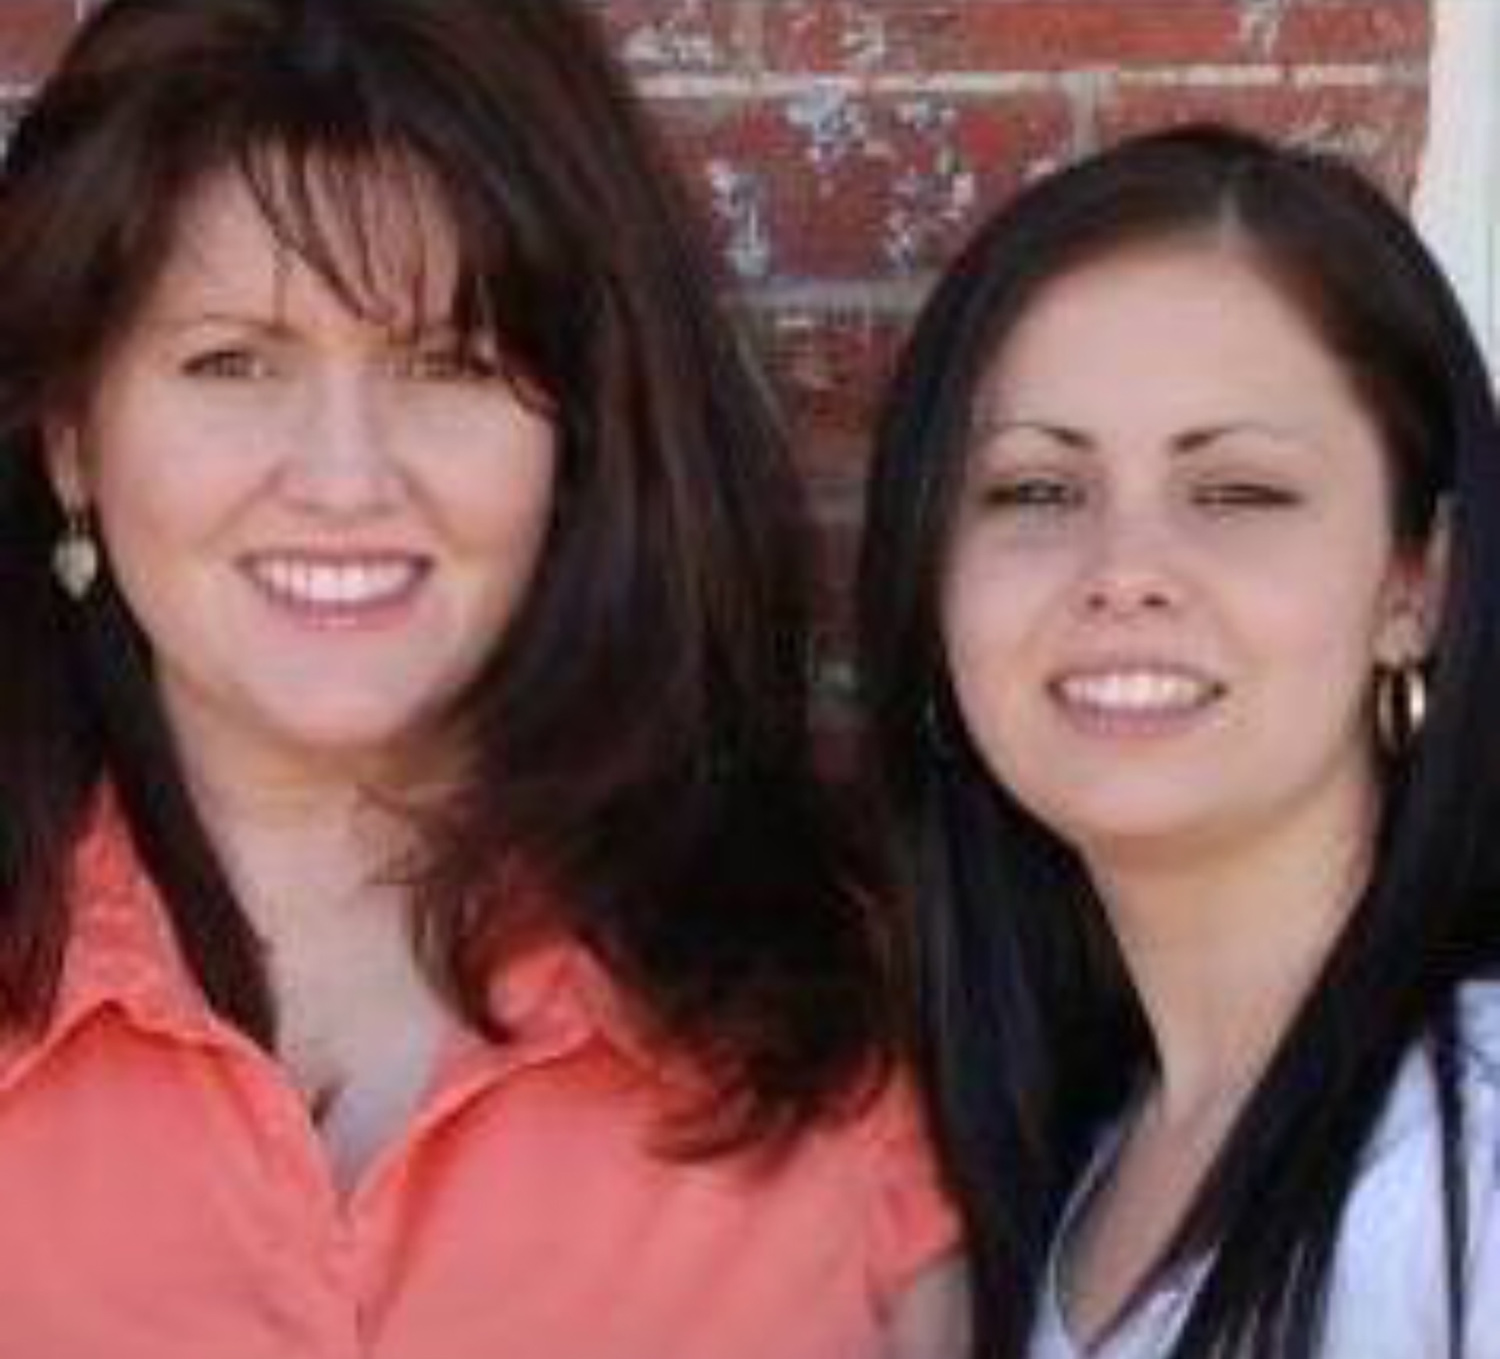 Laura Campbell with her daughter, Sierra Cruz.